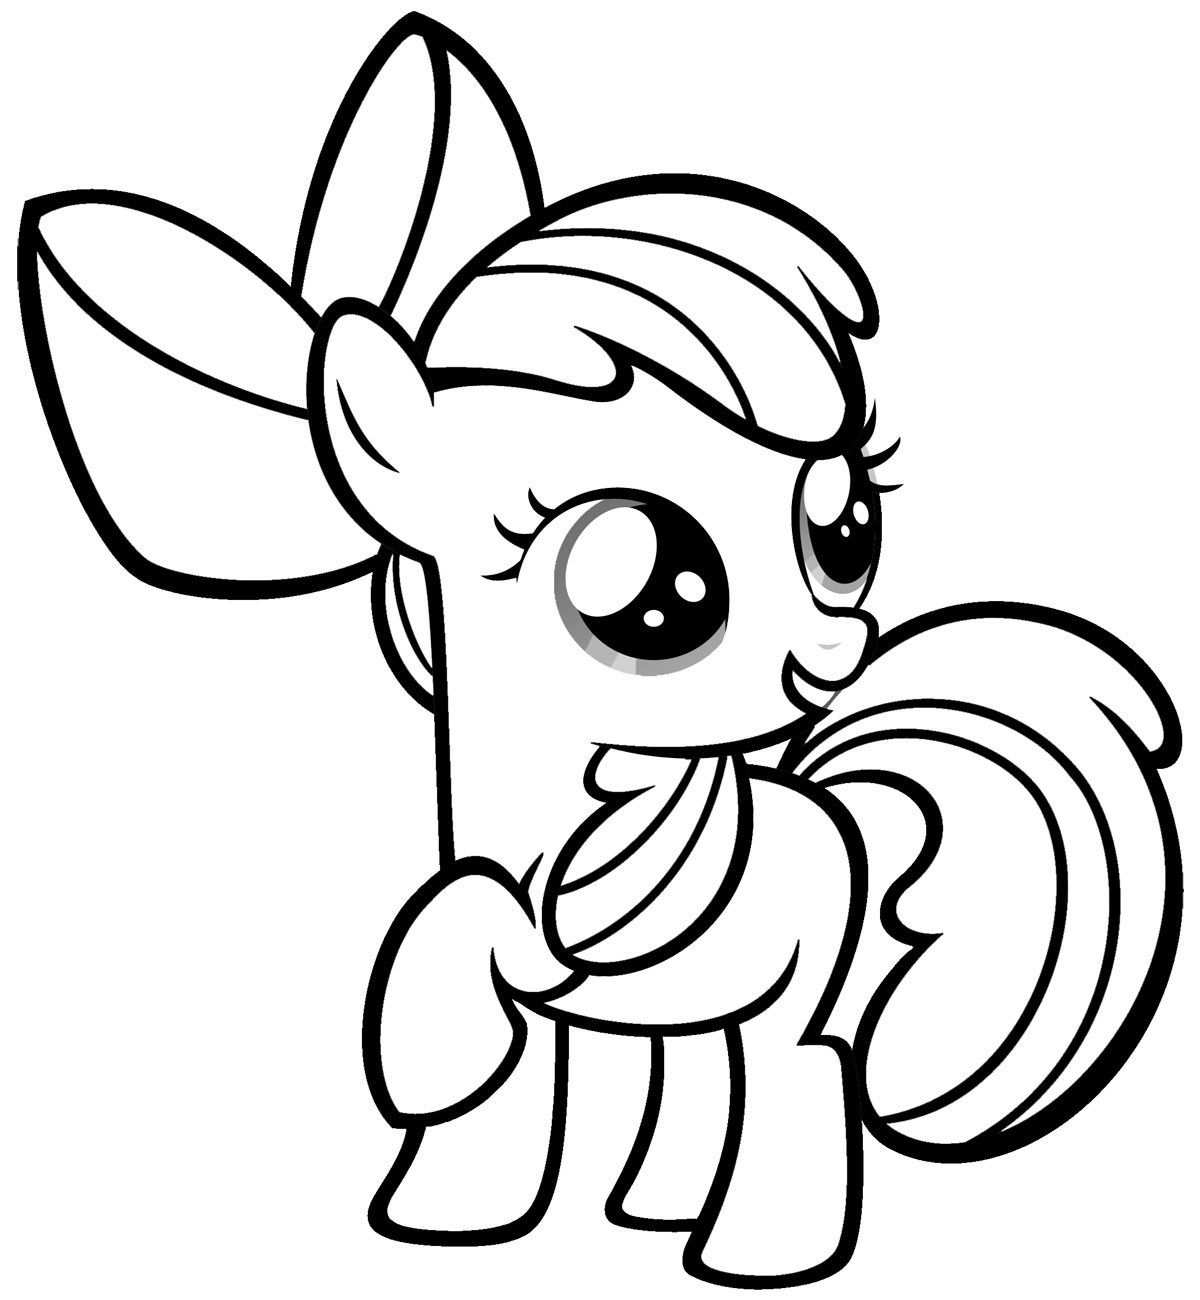 graphic regarding My Little Pony Coloring Pages Printable named Pin upon Publications Importance Looking at